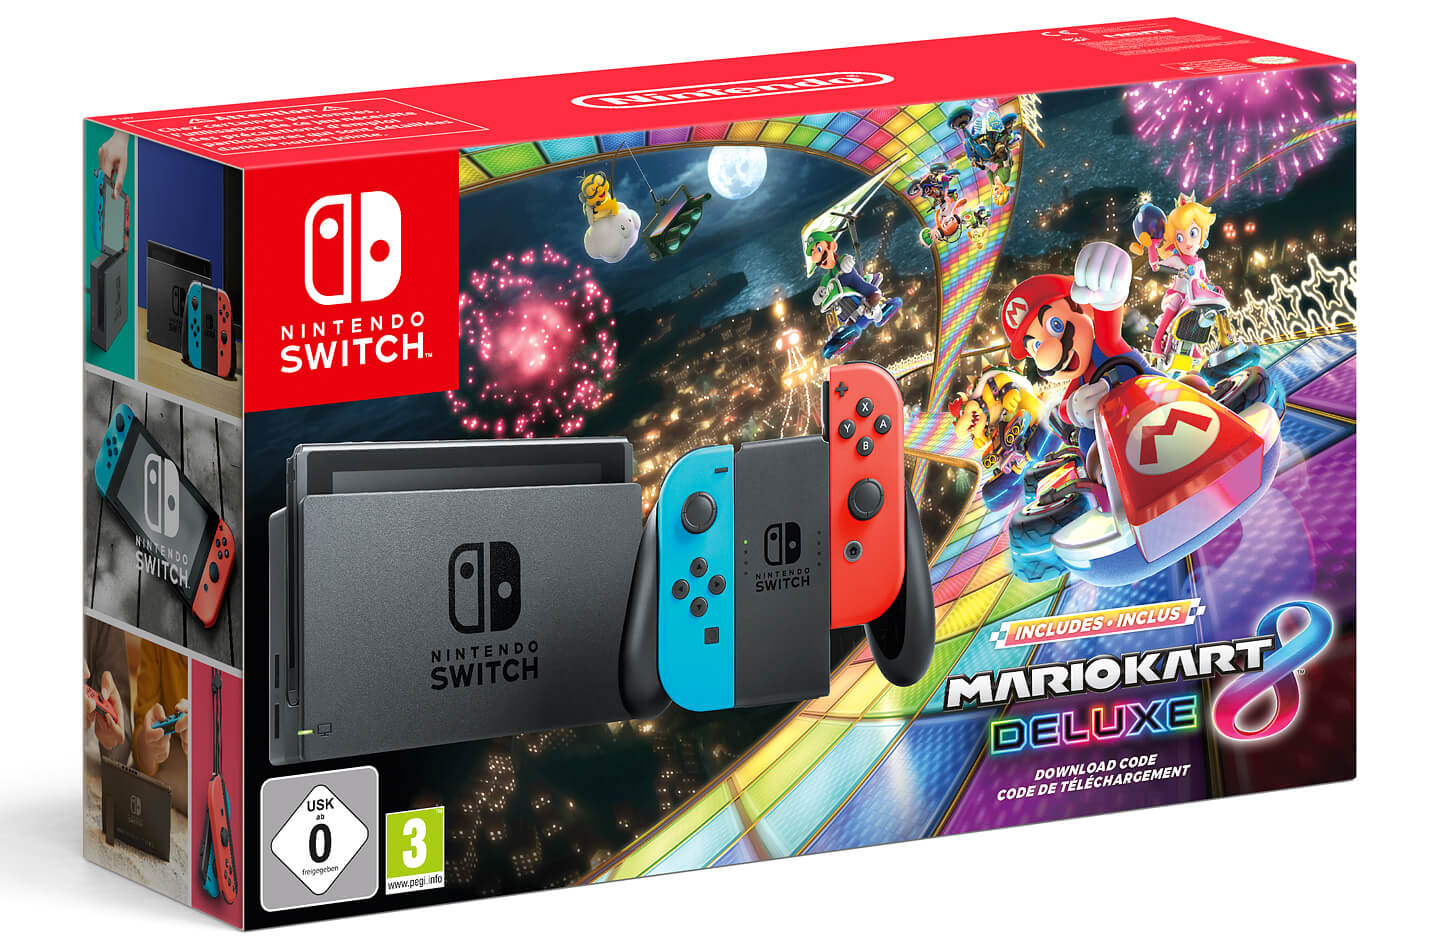 nintendo switch bundel met mario kart 8 deluxe letsgodigital. Black Bedroom Furniture Sets. Home Design Ideas